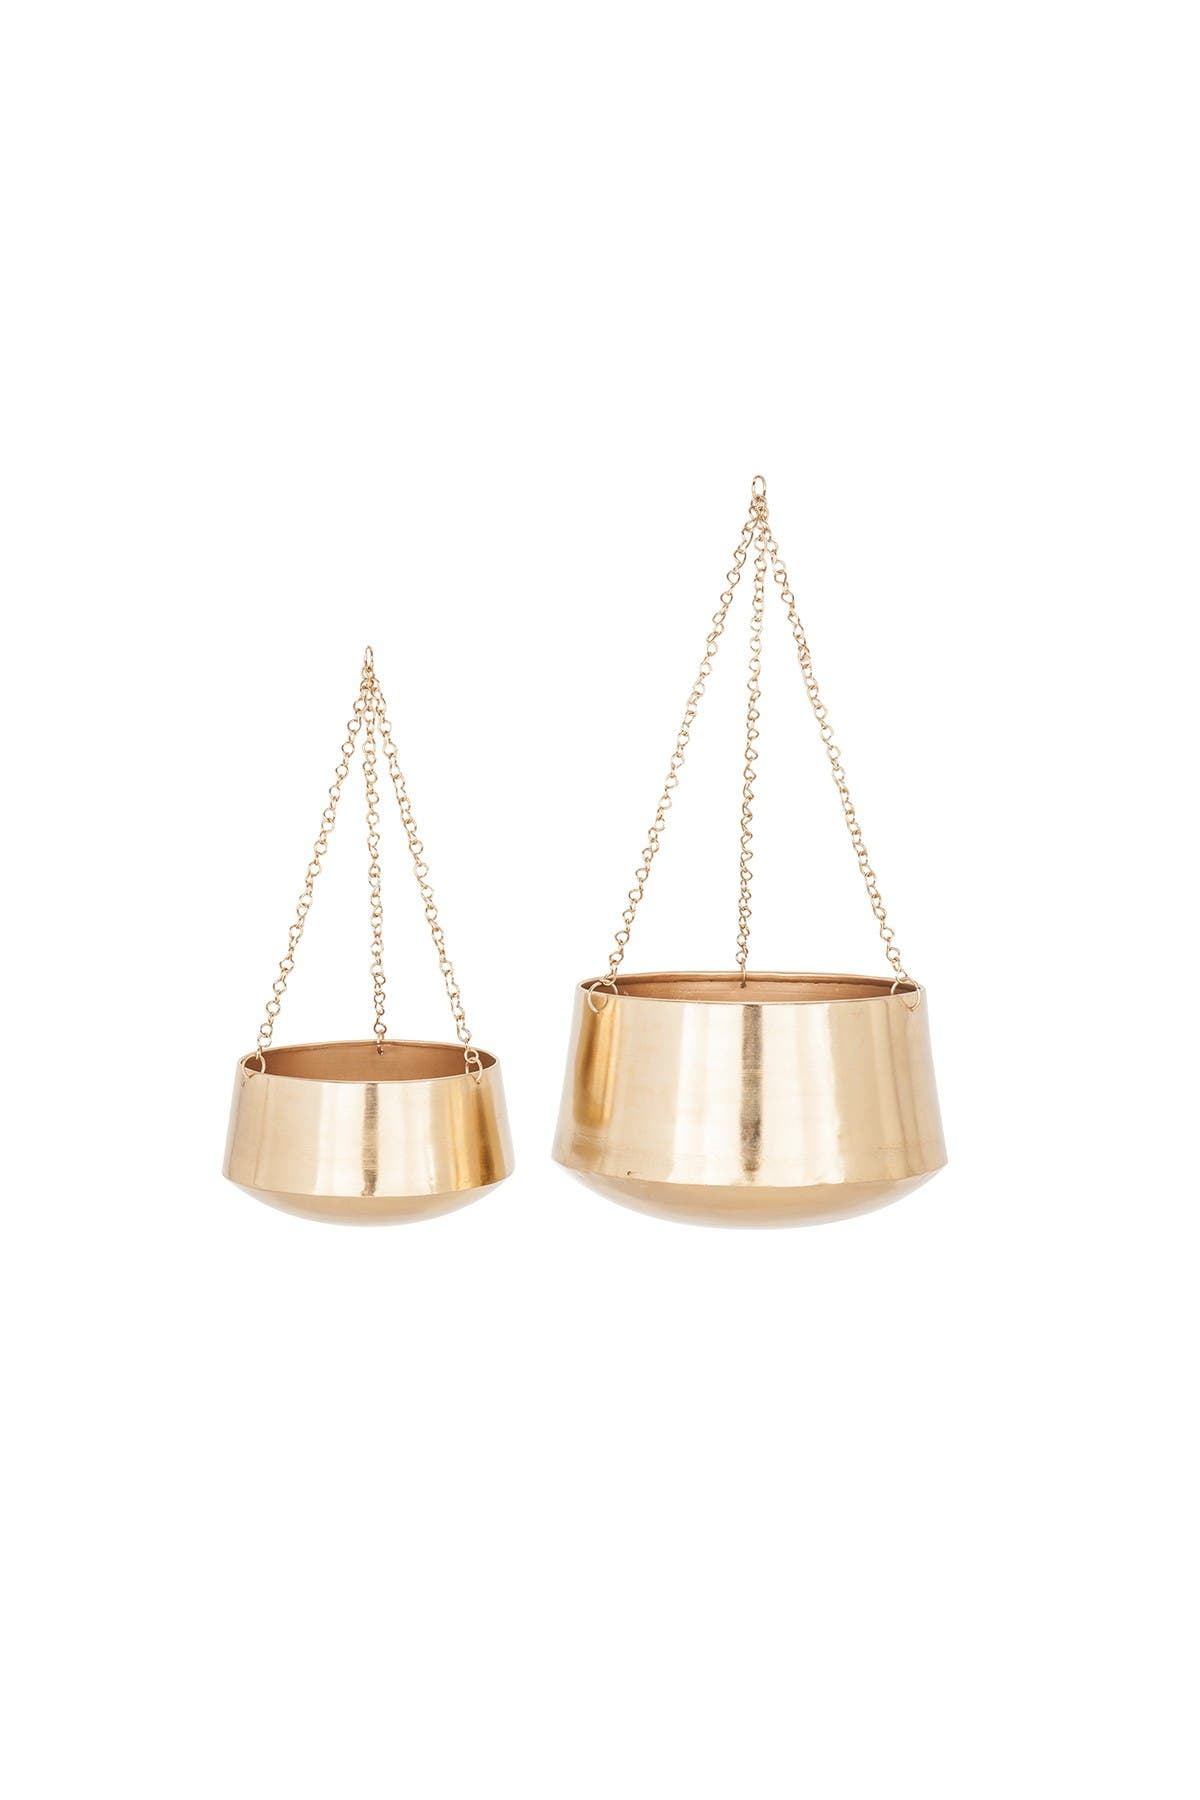 Image of Willow Row Small Modern Gold Hanging Planters - Set of 2